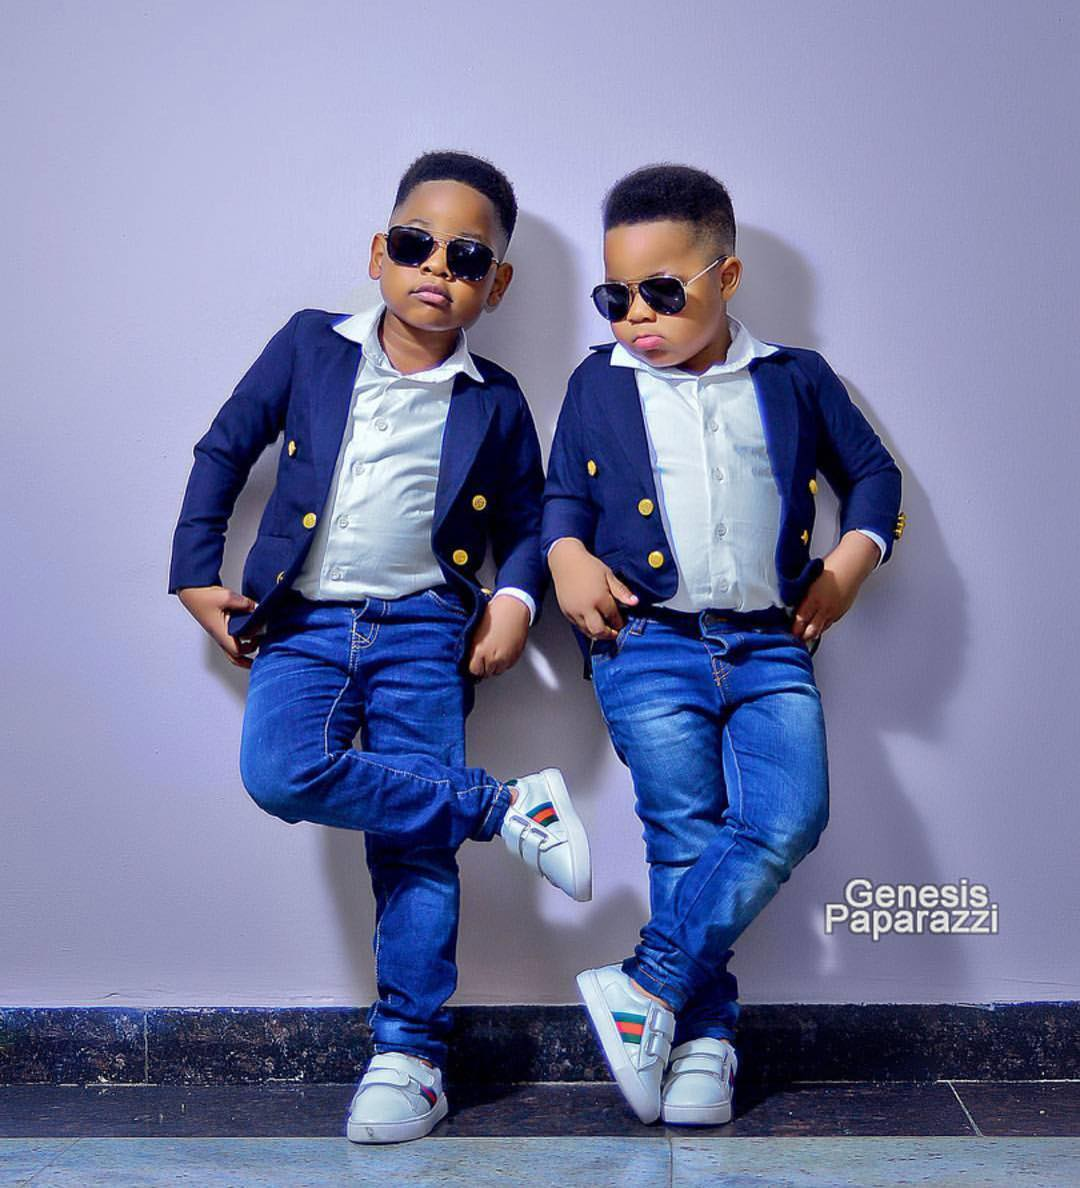 Fashion for Kids: These Stylish Children Are Too Hot To Touch!